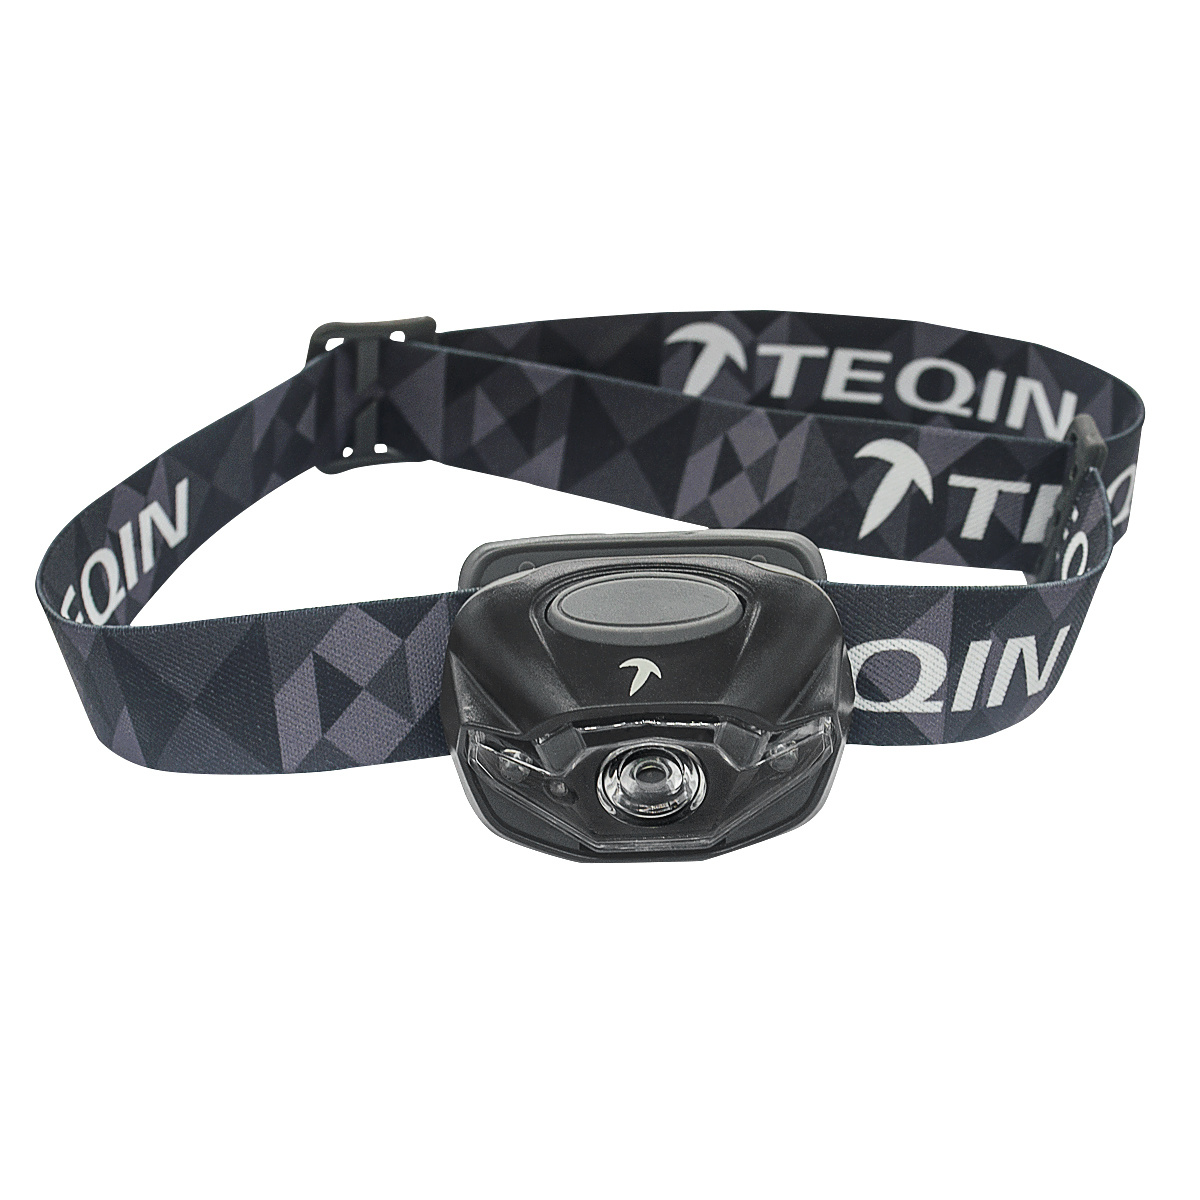 Portable Headlamp, Applied to Climbing, Camping, Hiking, Fishing